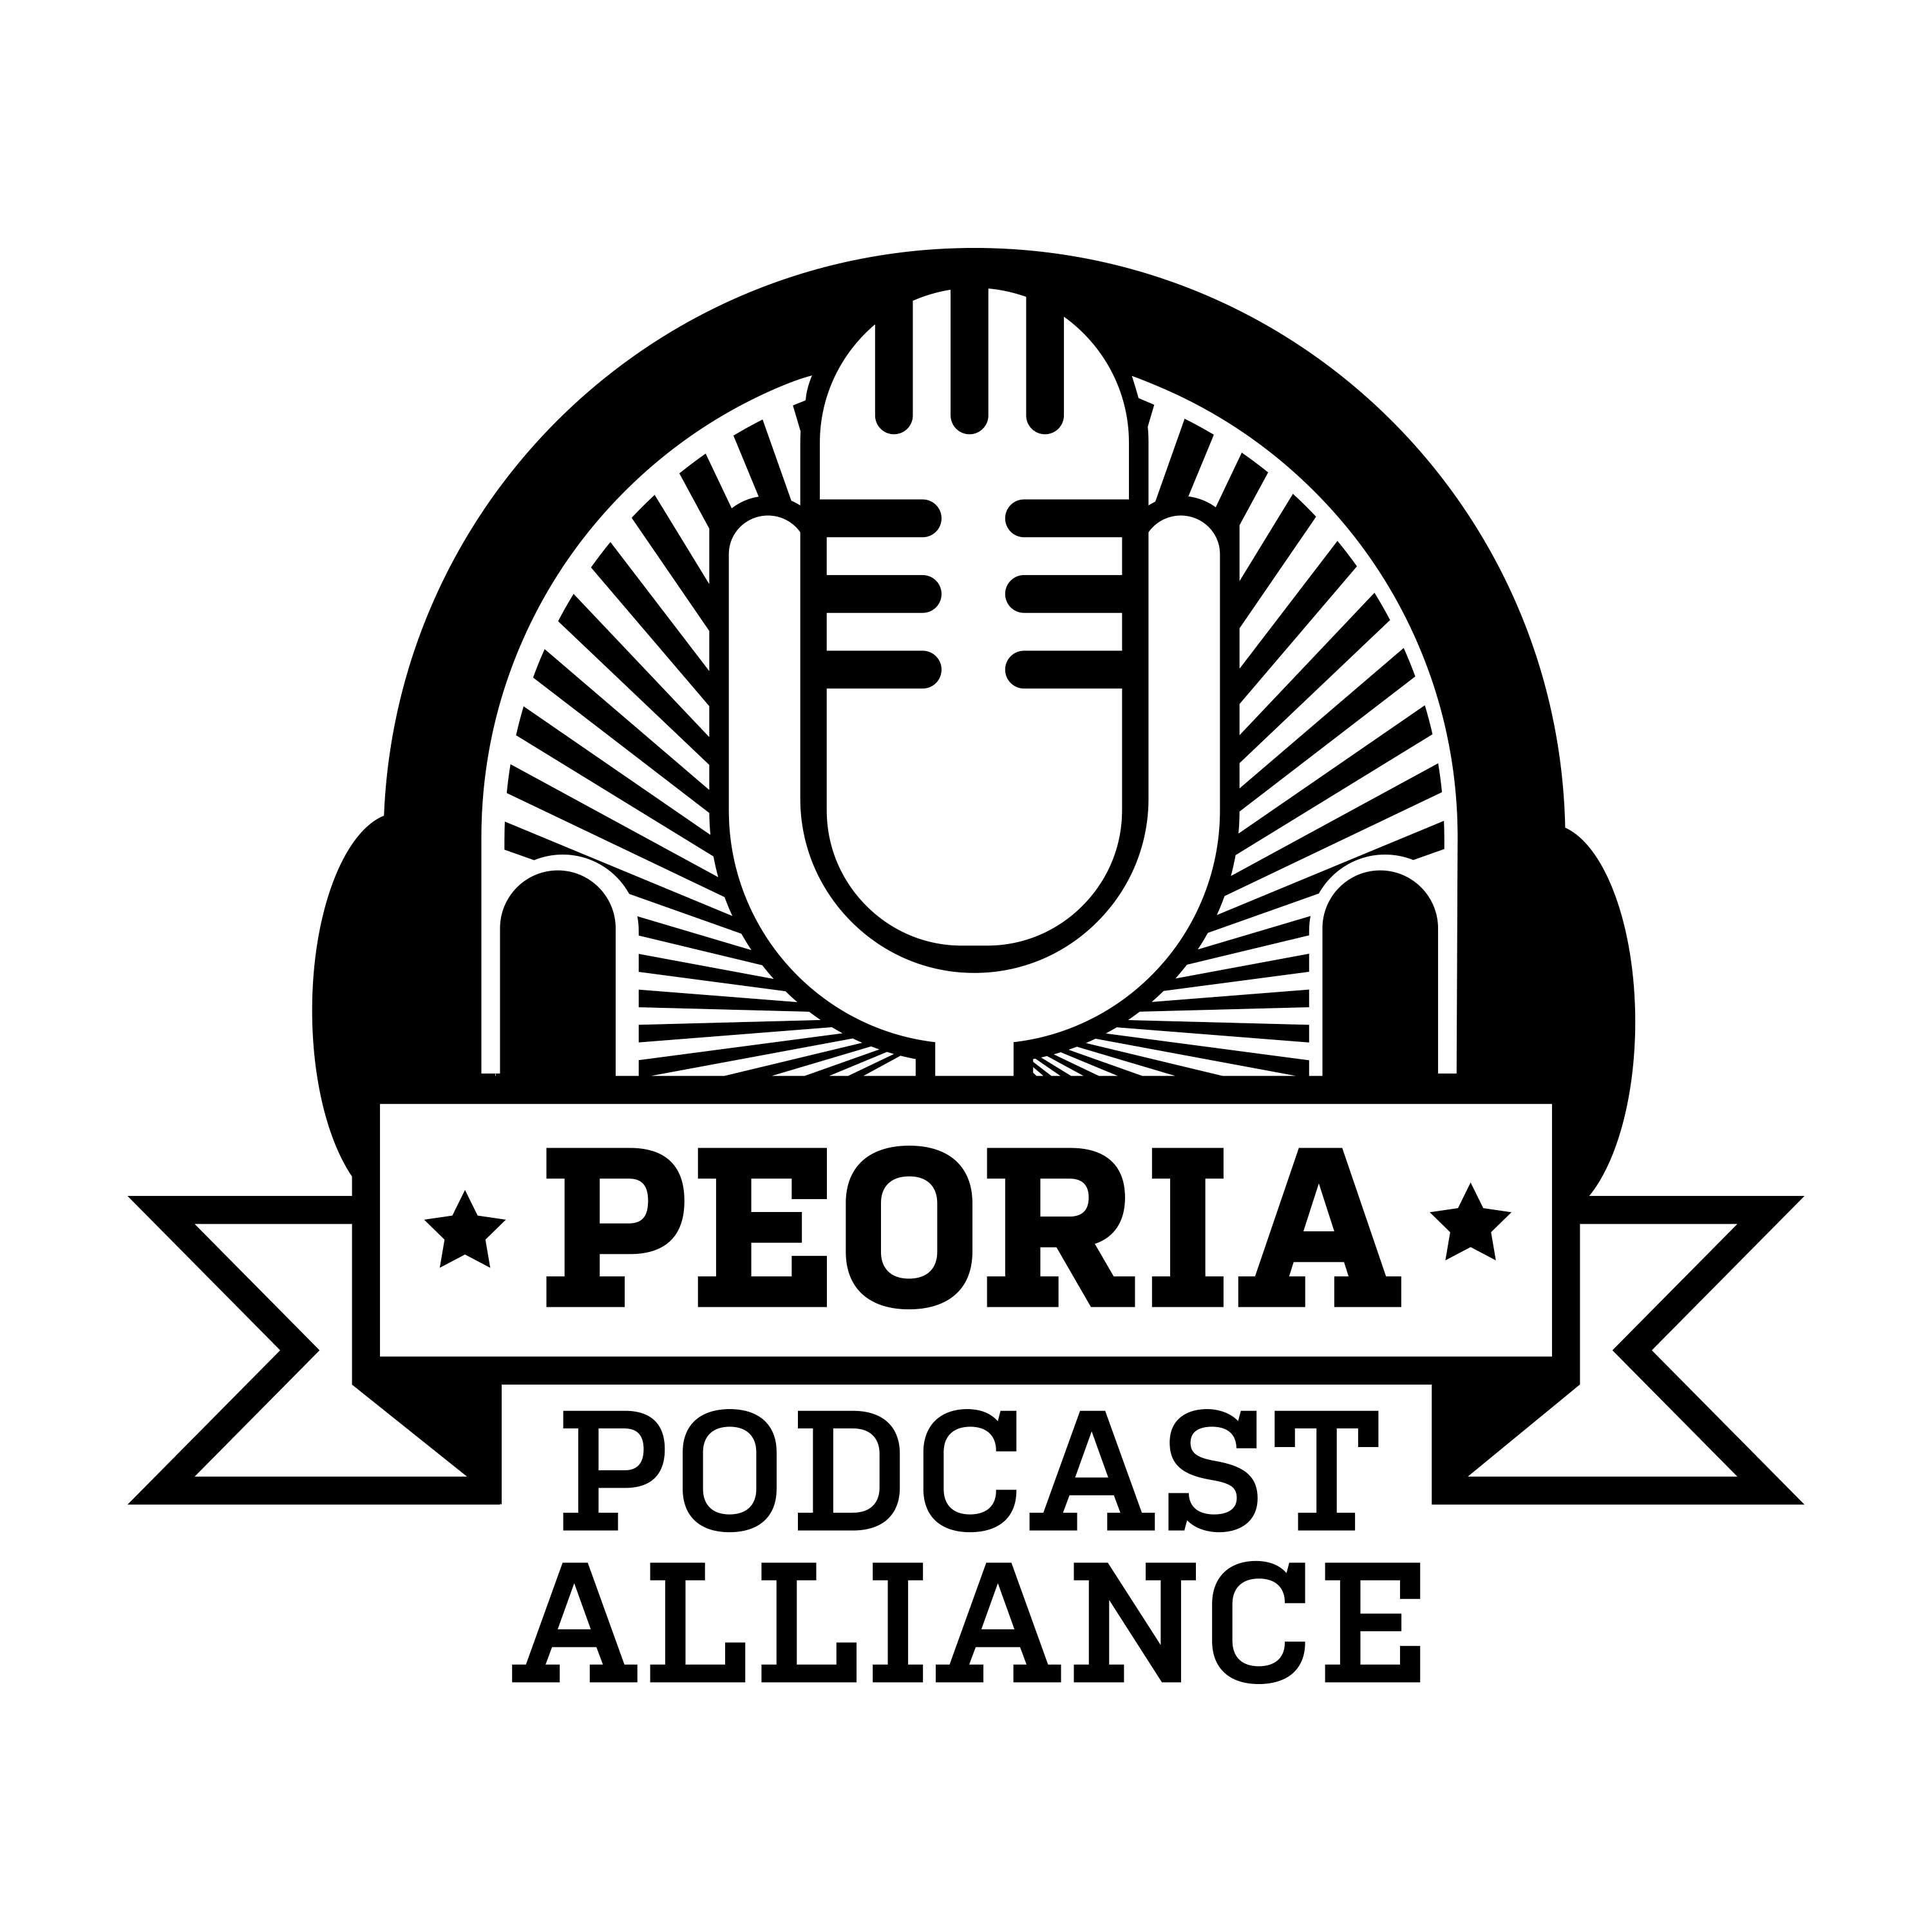 Peoria podcast alliance by ppa on apple podcasts.